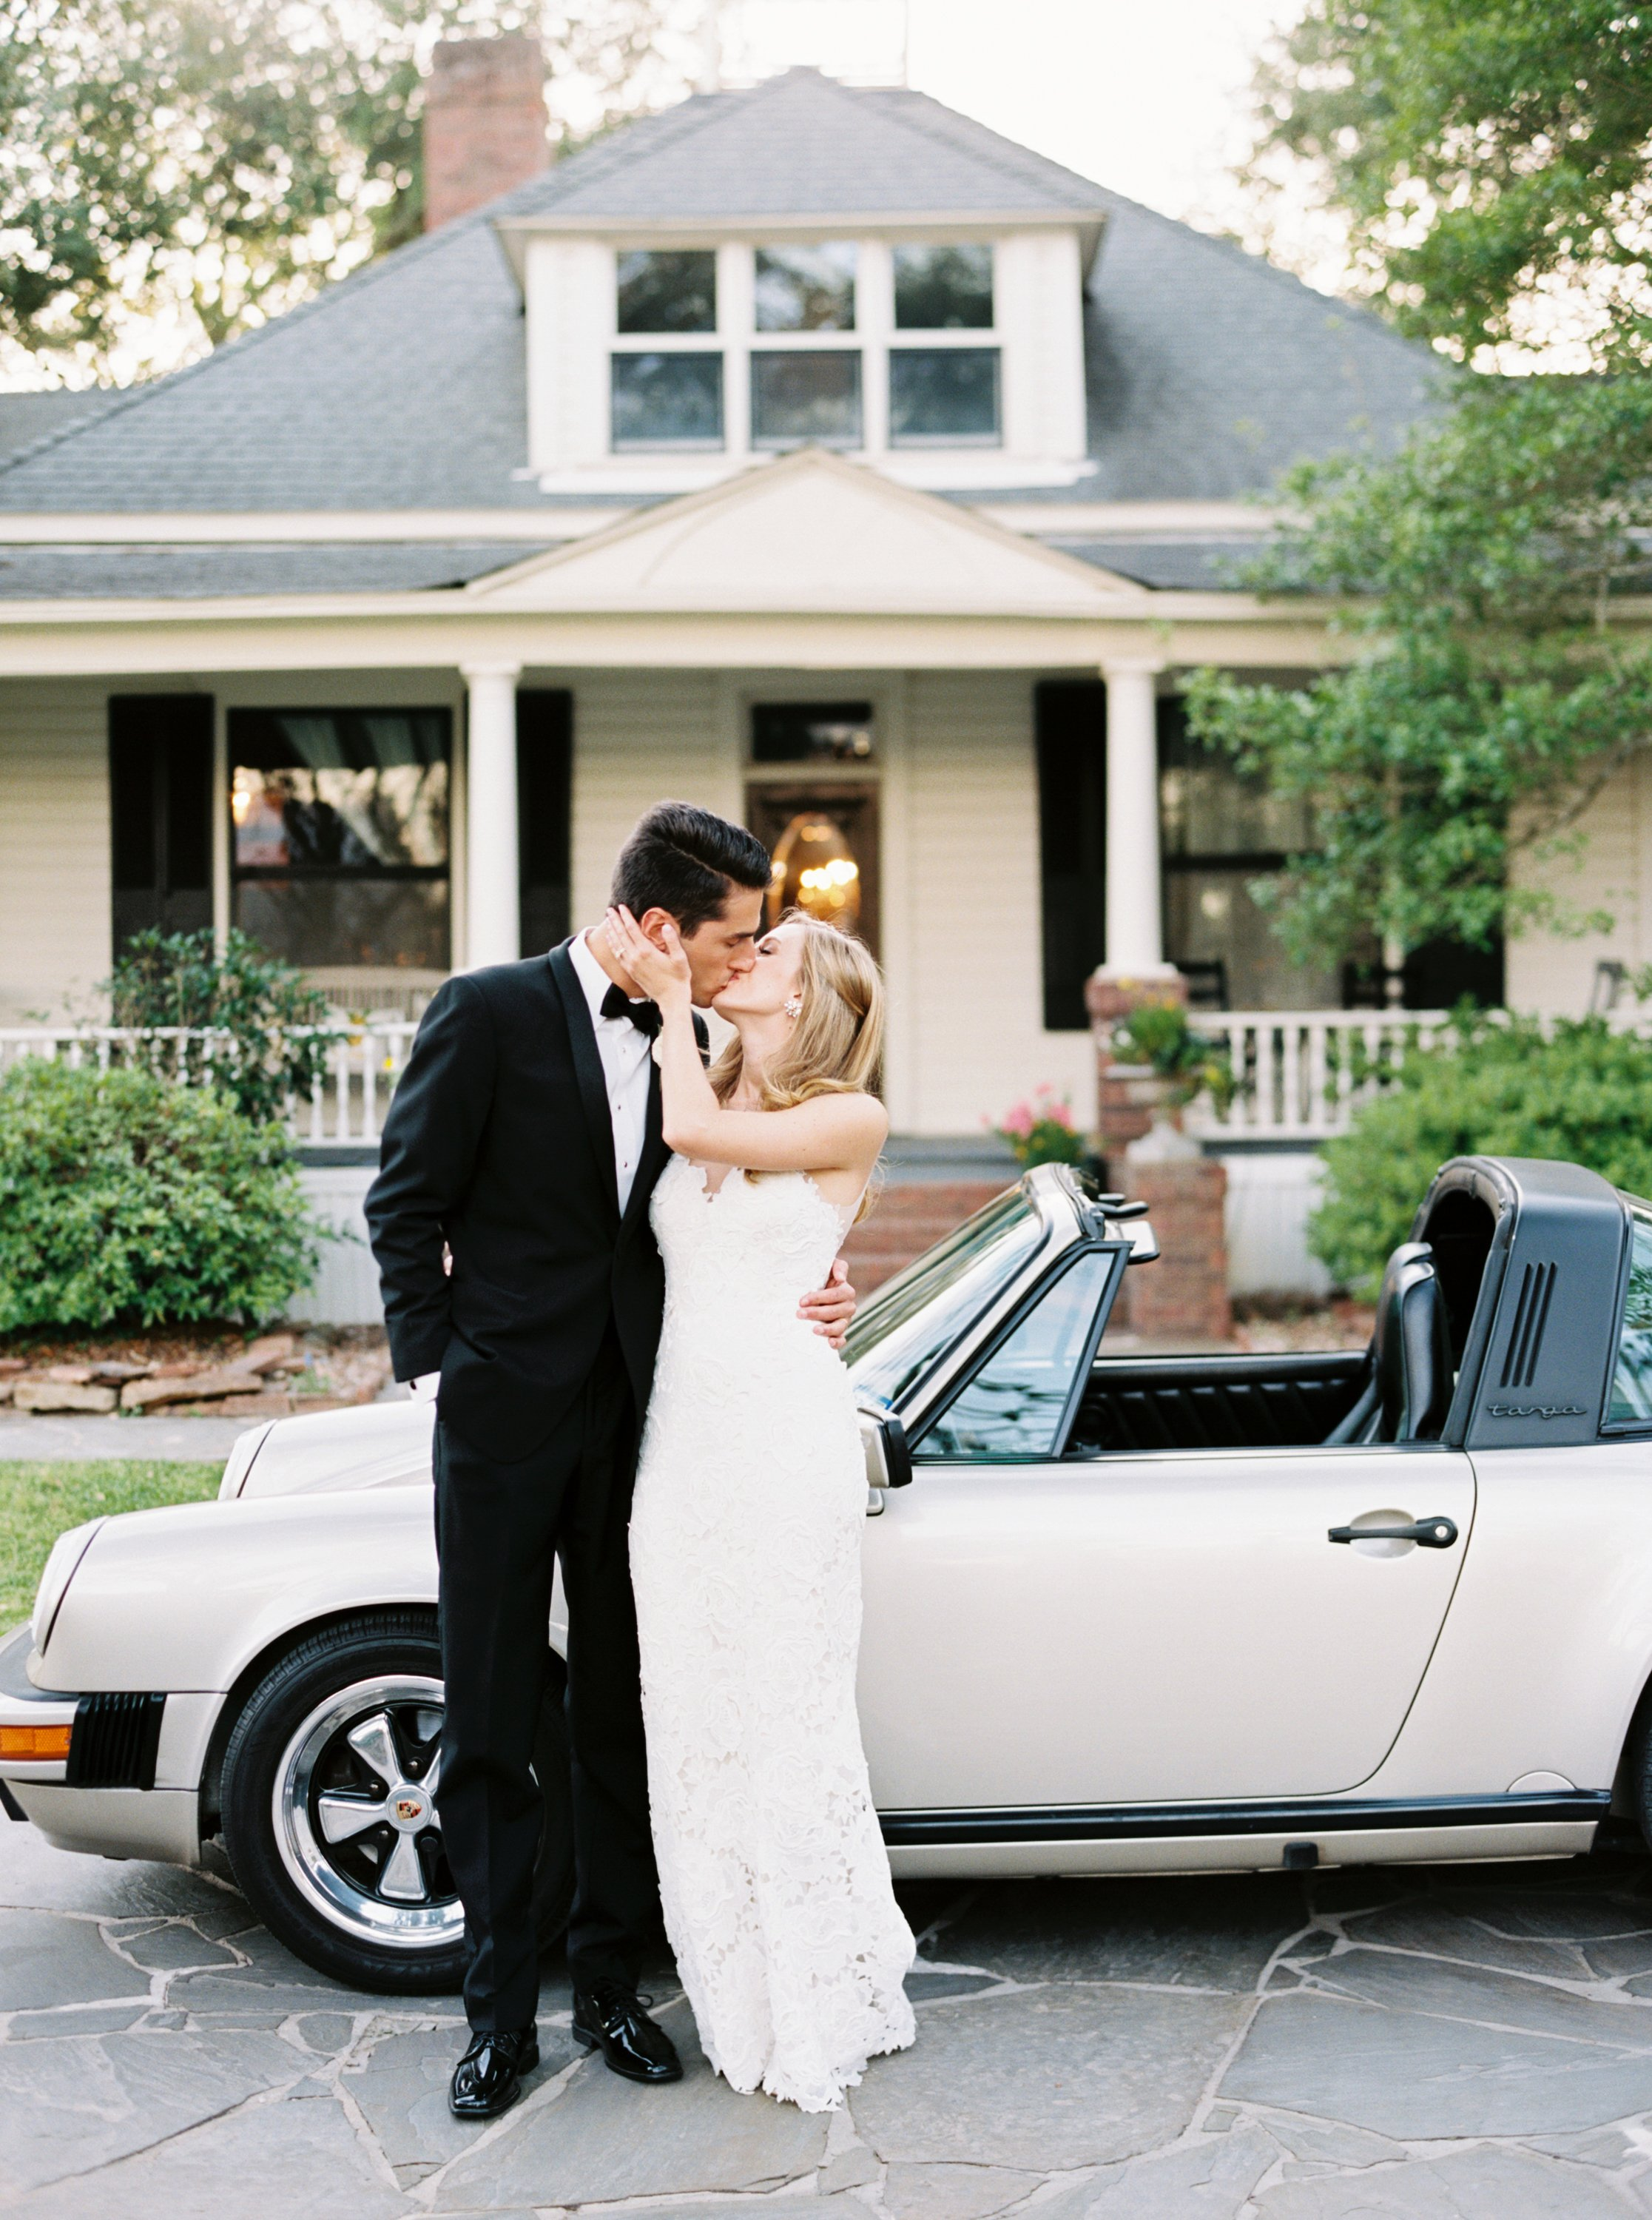 Bride and Groom kiss in front of classic getaway car  by Top Texas Wedding Photographer Hannah Mayson